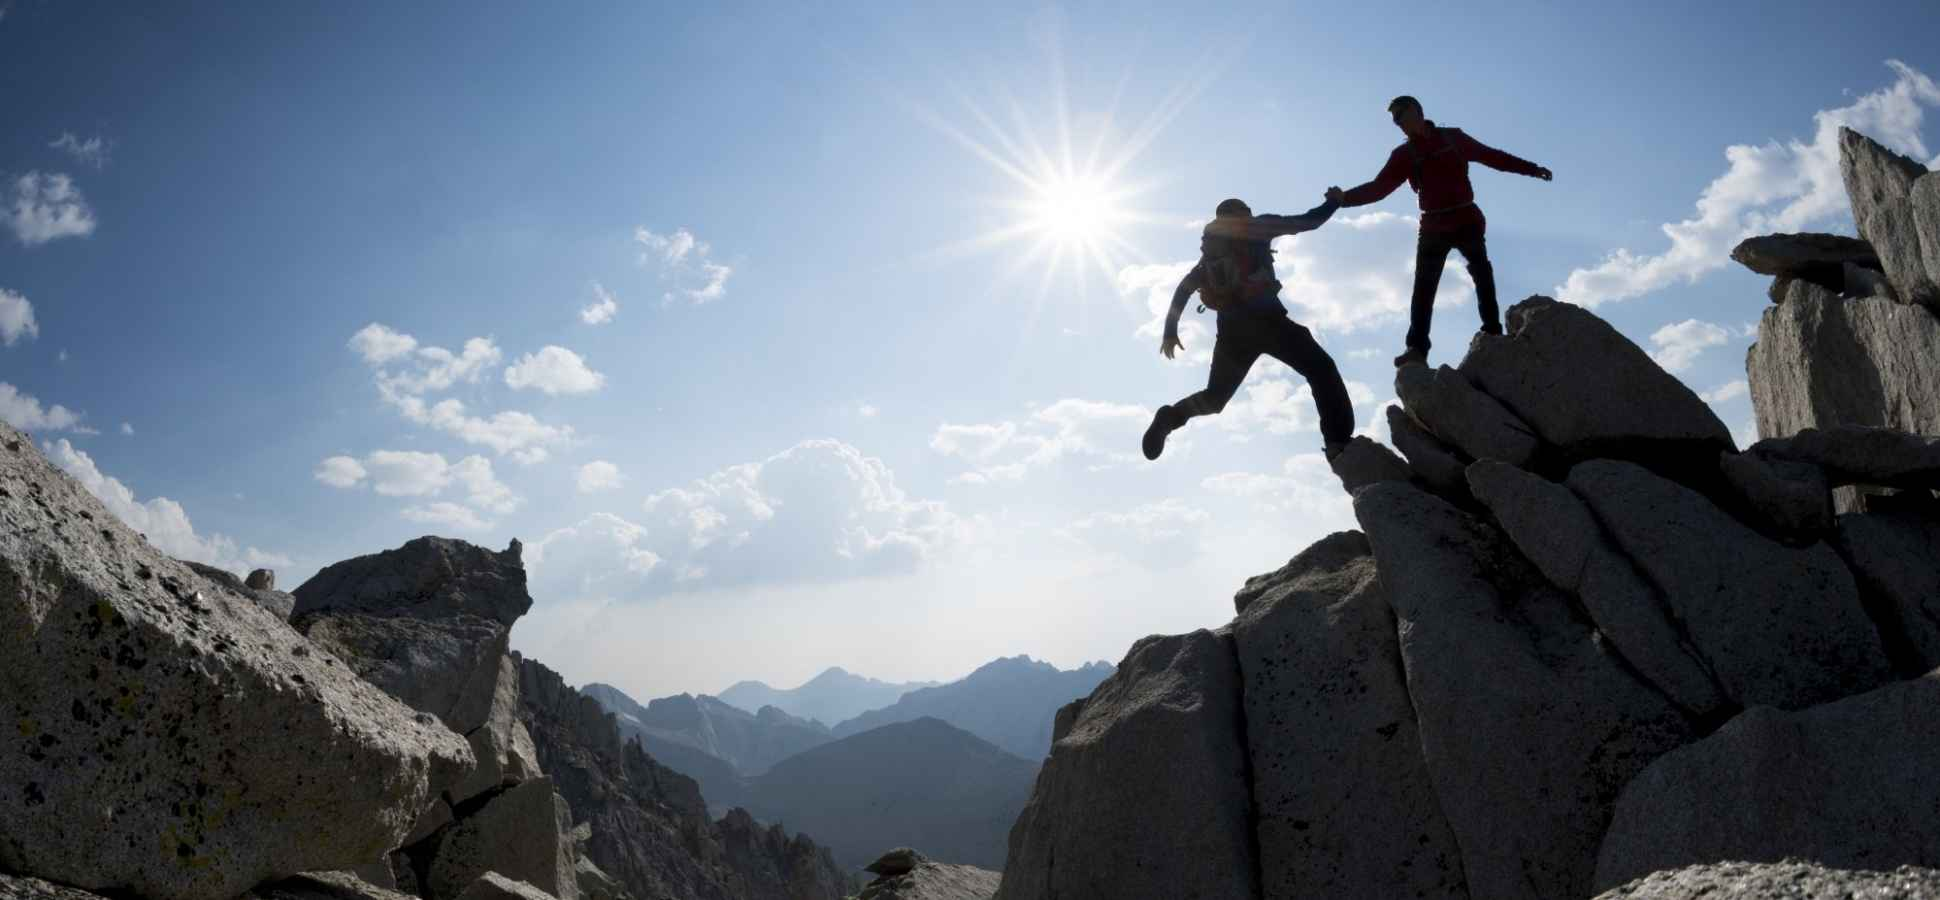 7 Tactics to Motivate Employees (Other Than Handing Out Wads of Cash)